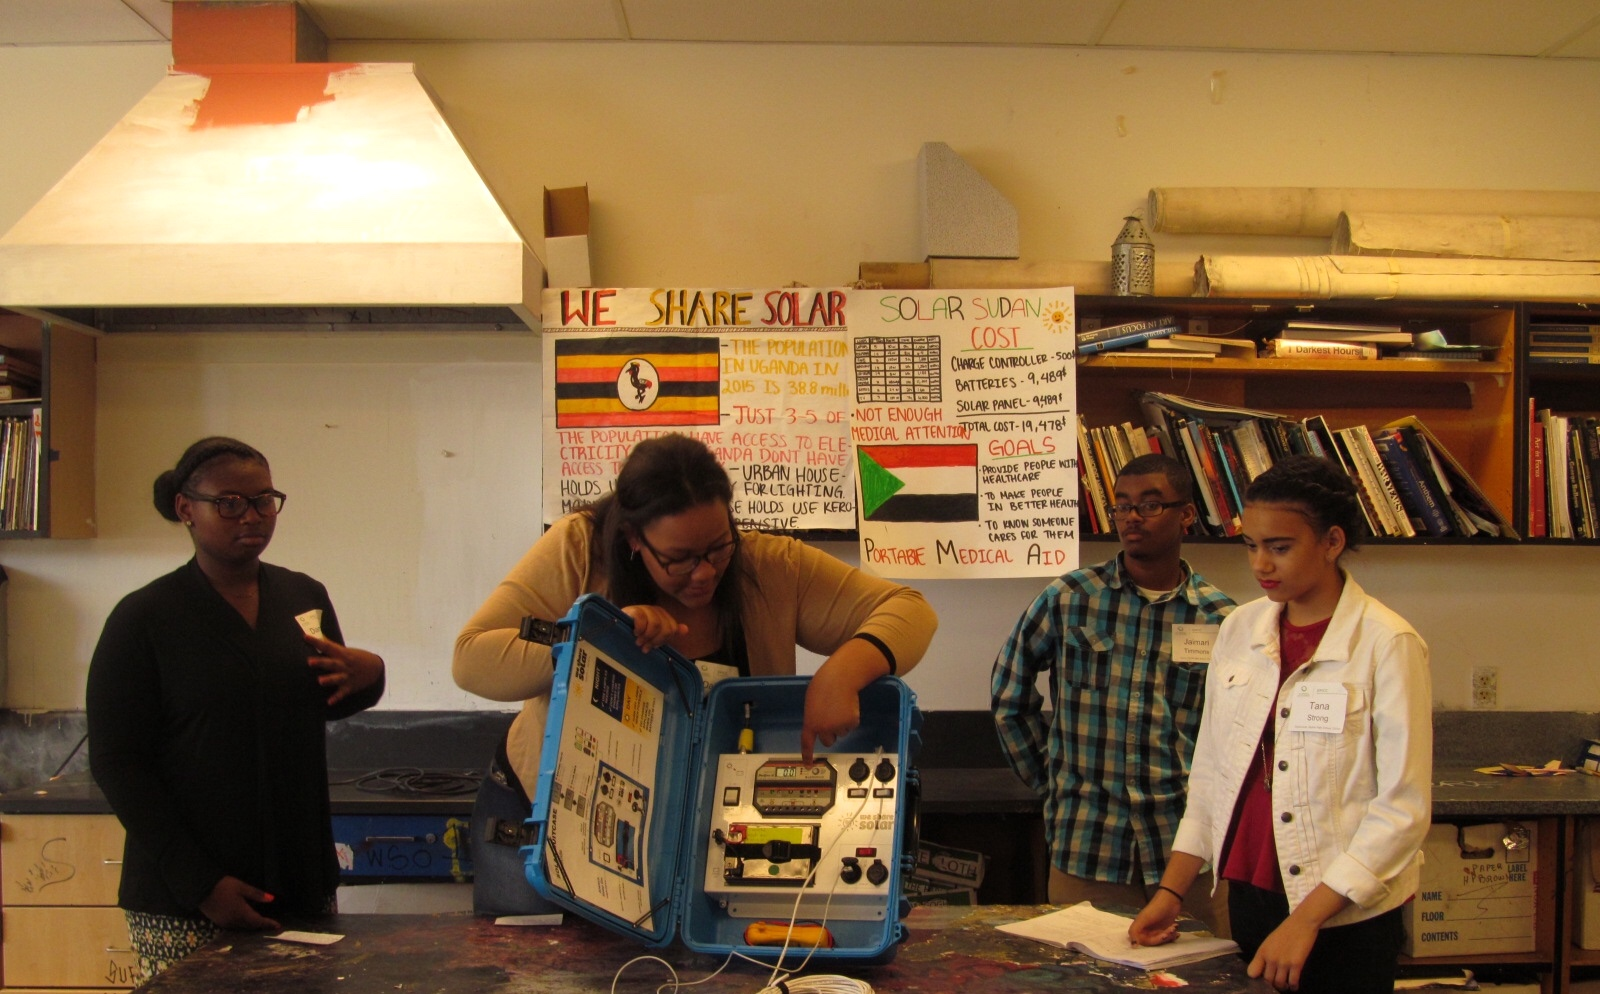 Skyline High School student Daijonne explains the capabilities of the solar suitcase that her group constructed.